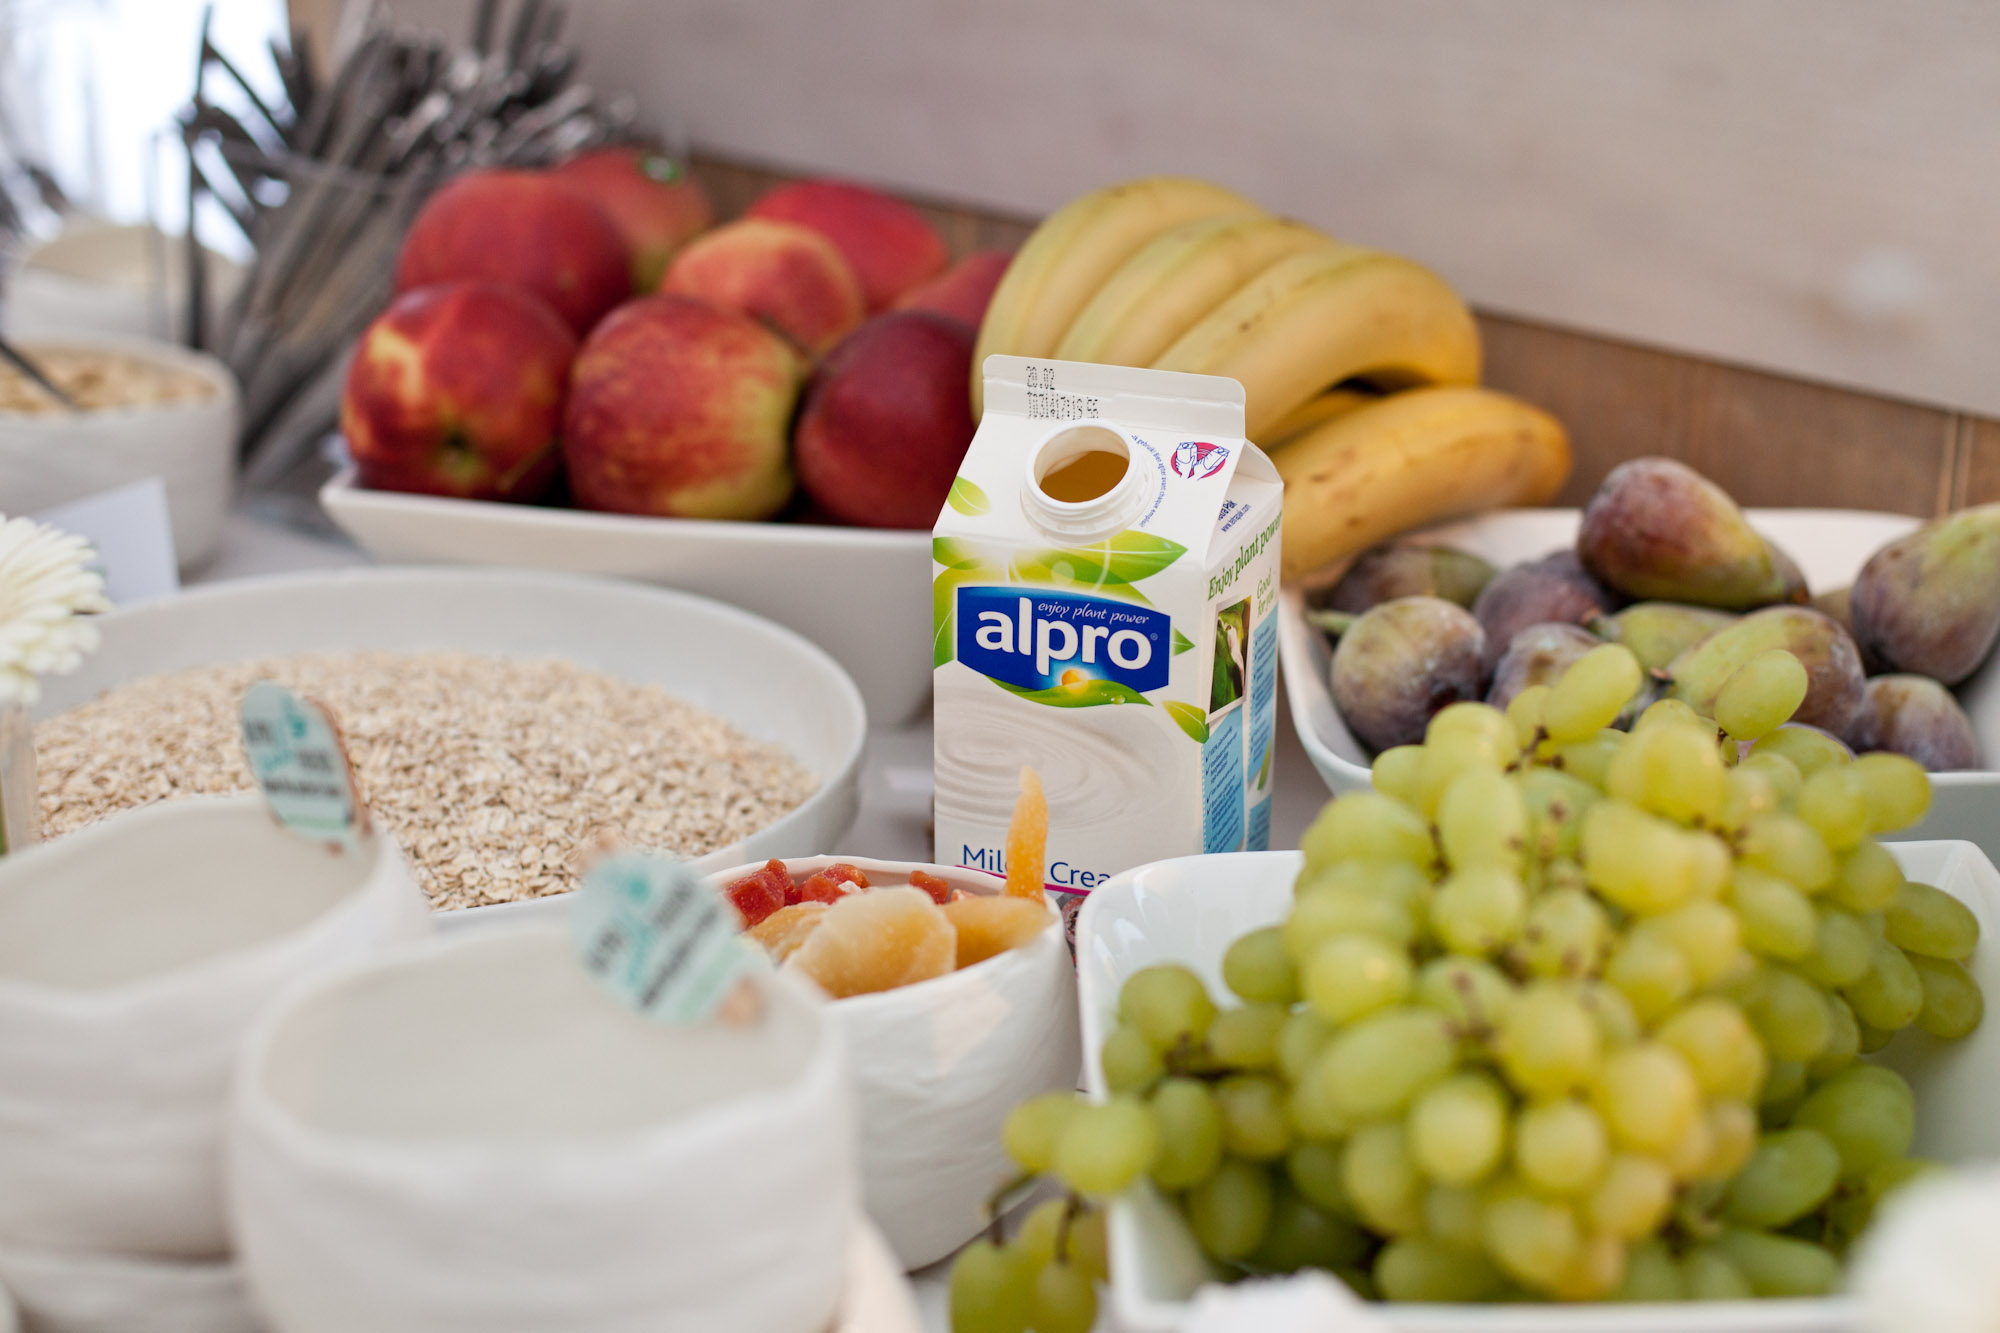 alpro mild mornings